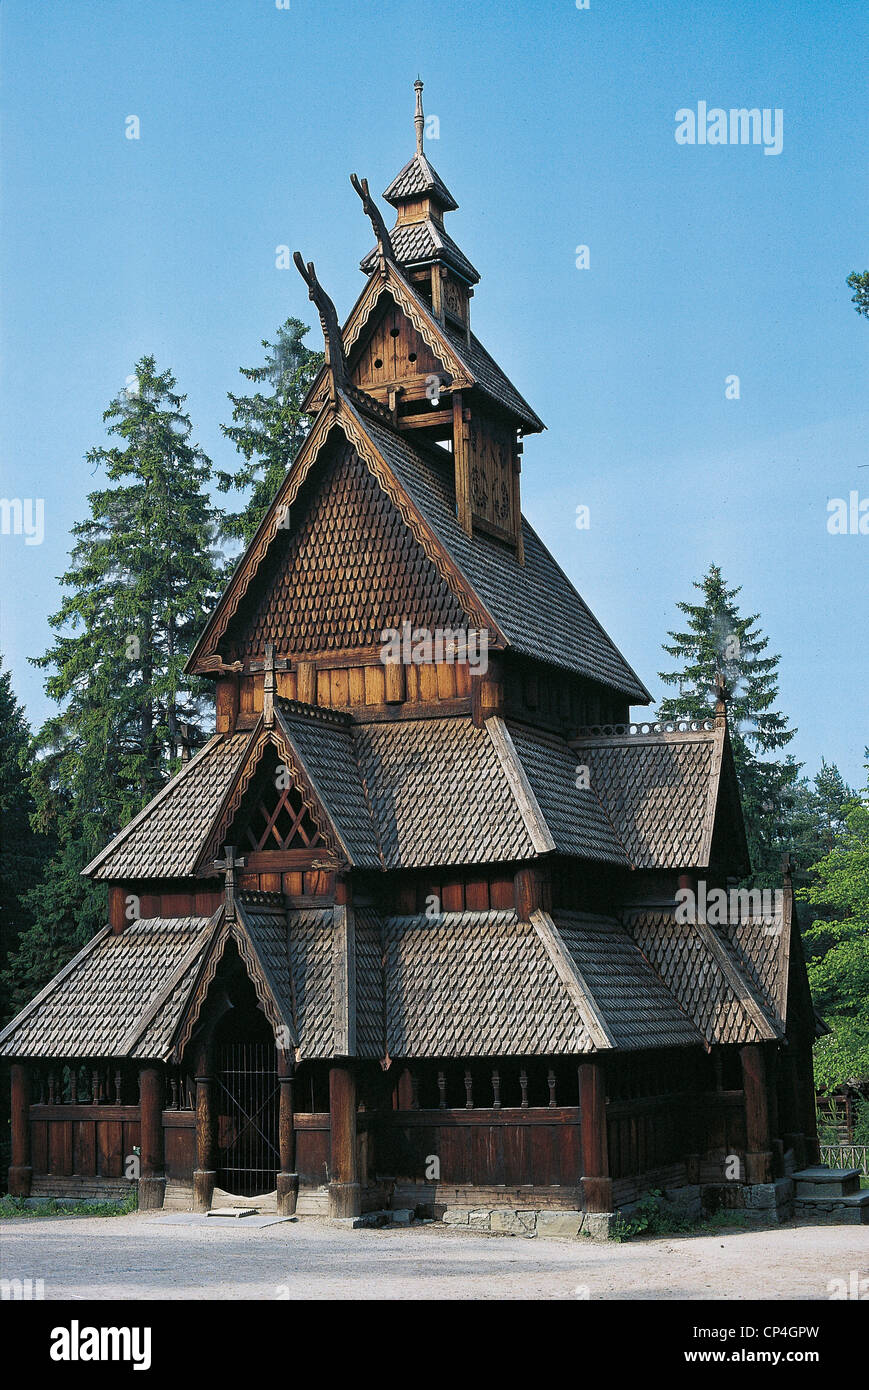 Norway - Oslo - Norwegian Folk Museum (Norsk Folkemuseum), outdoor ethnographic museum. Wooden church: Gol stave - Stock Image